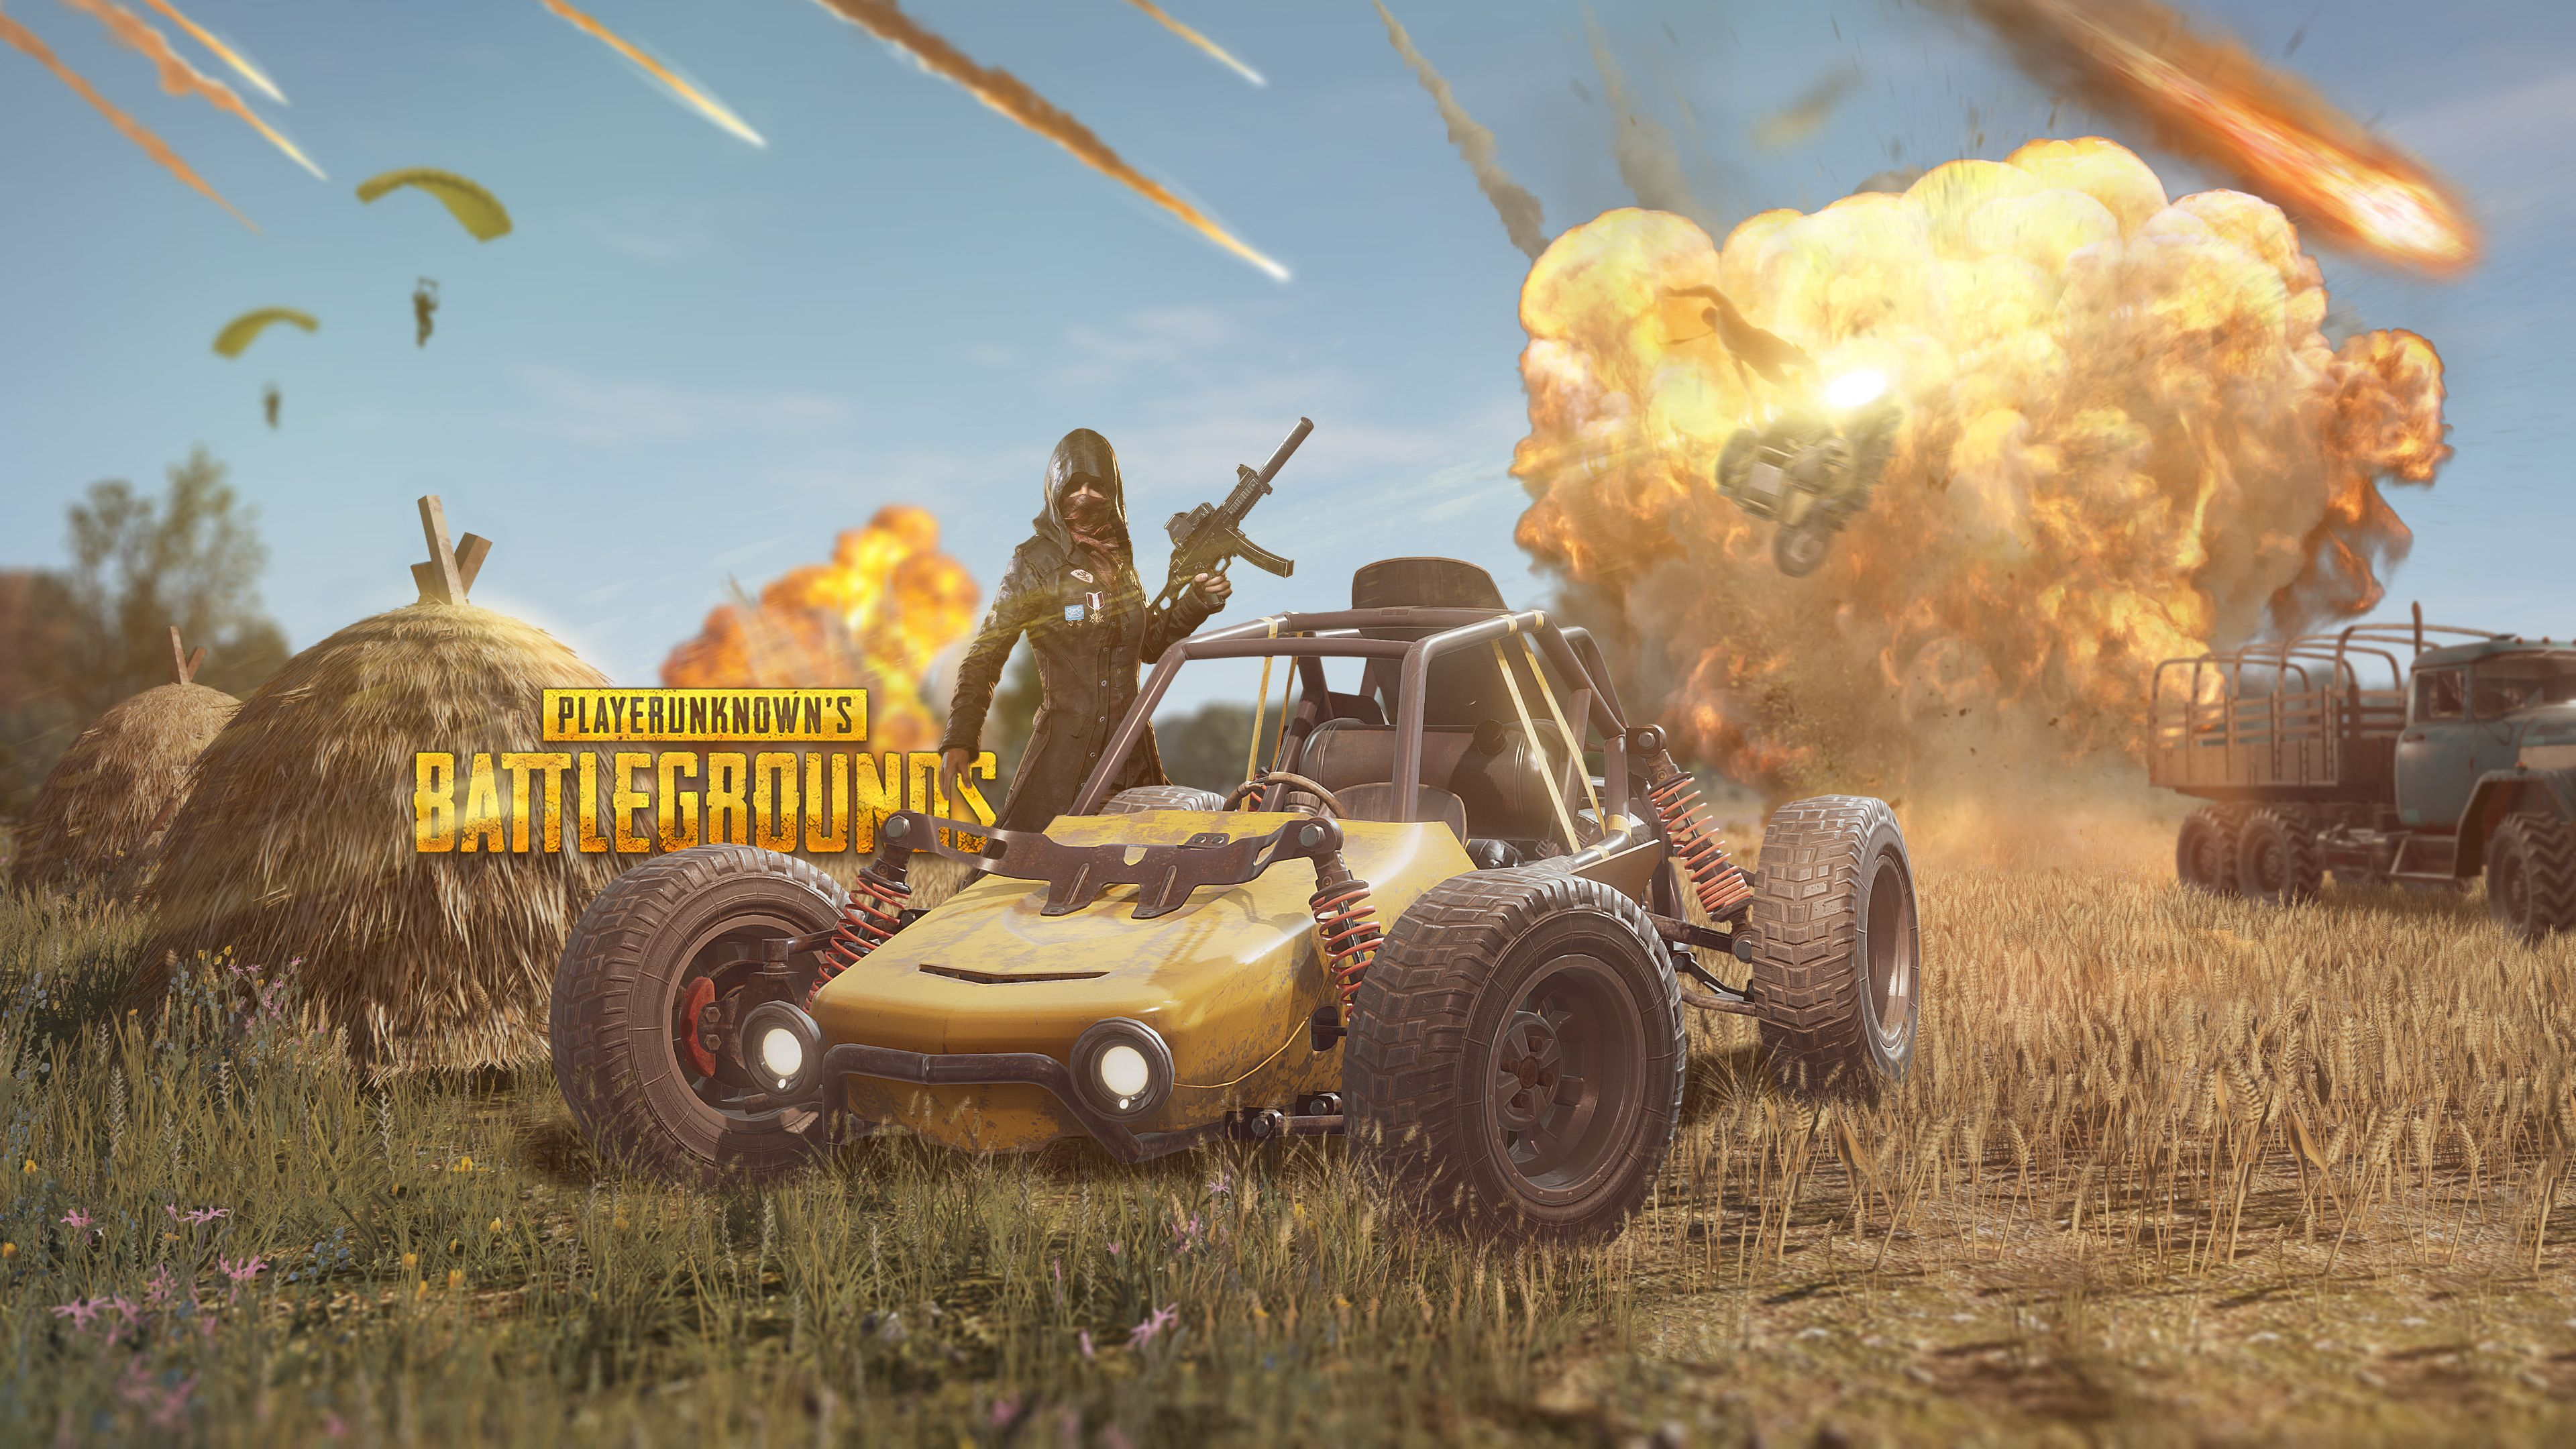 Pubg Wallpapers Widescreen On Wallpaper 1080p HD